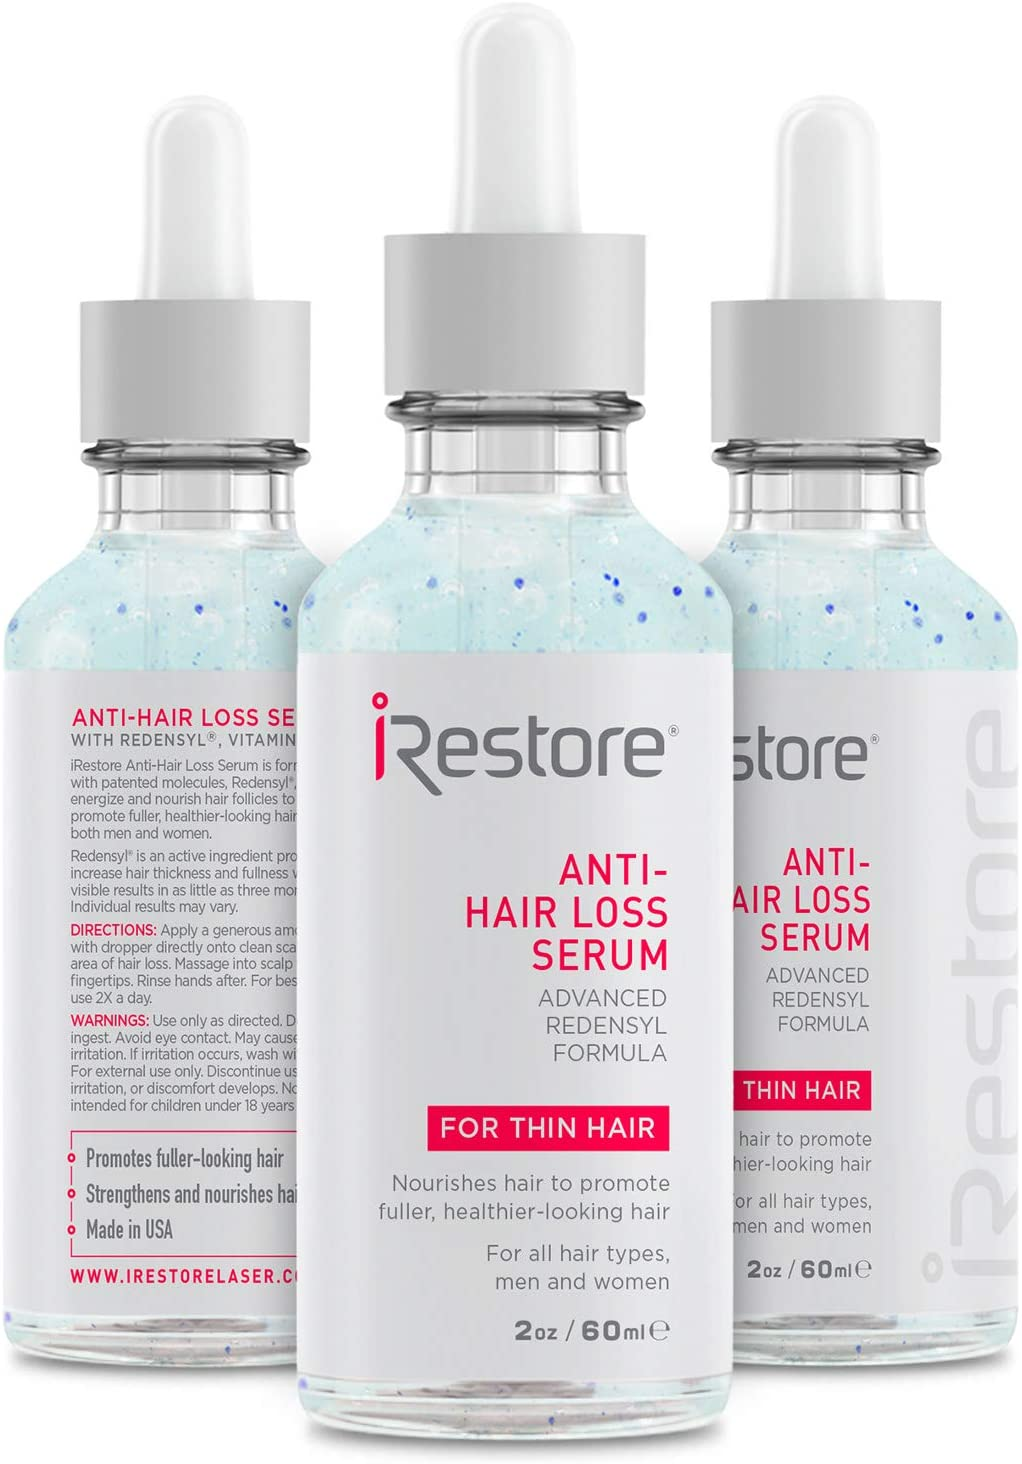 iRestore Anti-Hair Loss Serum - 2oz / 60ml - 3'lü Paket